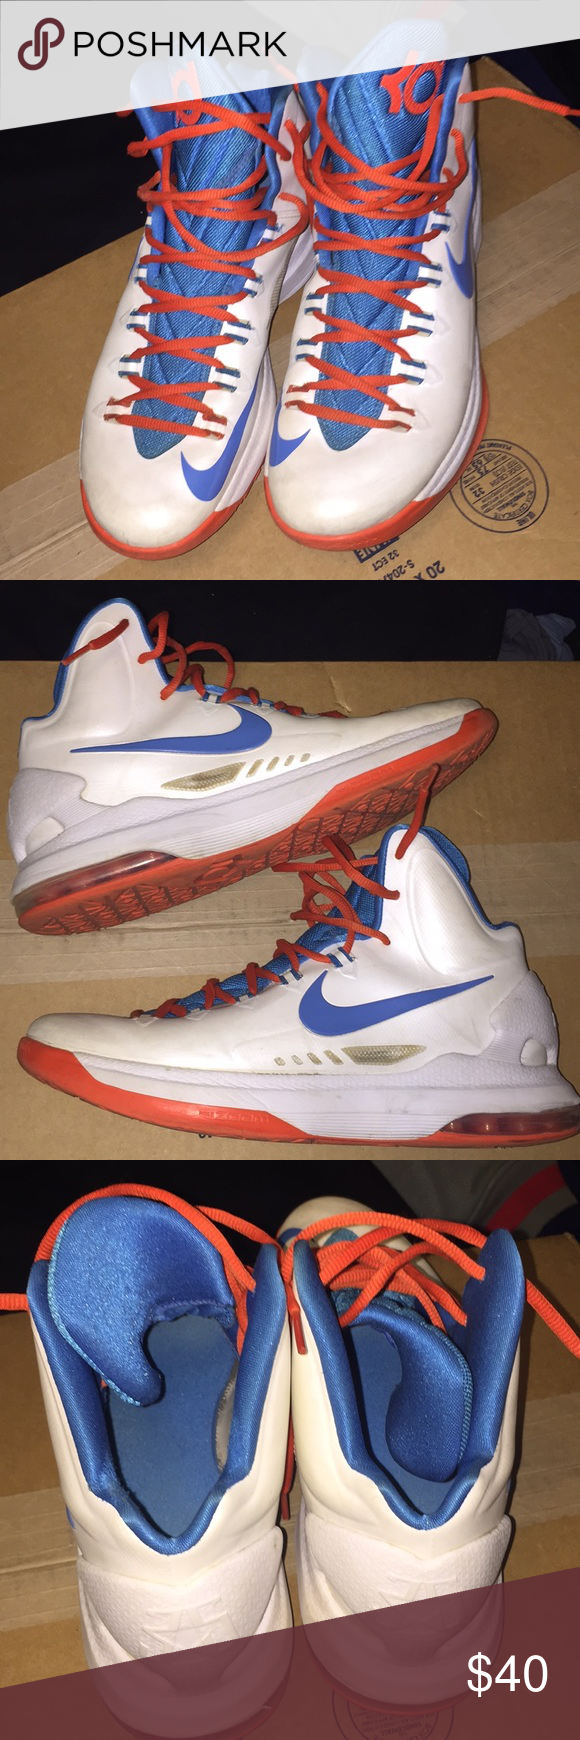 new products 8a581 64cf6 Nike Zoom KD V5 SZ10 SZ10 Nike Shoes Sneakers